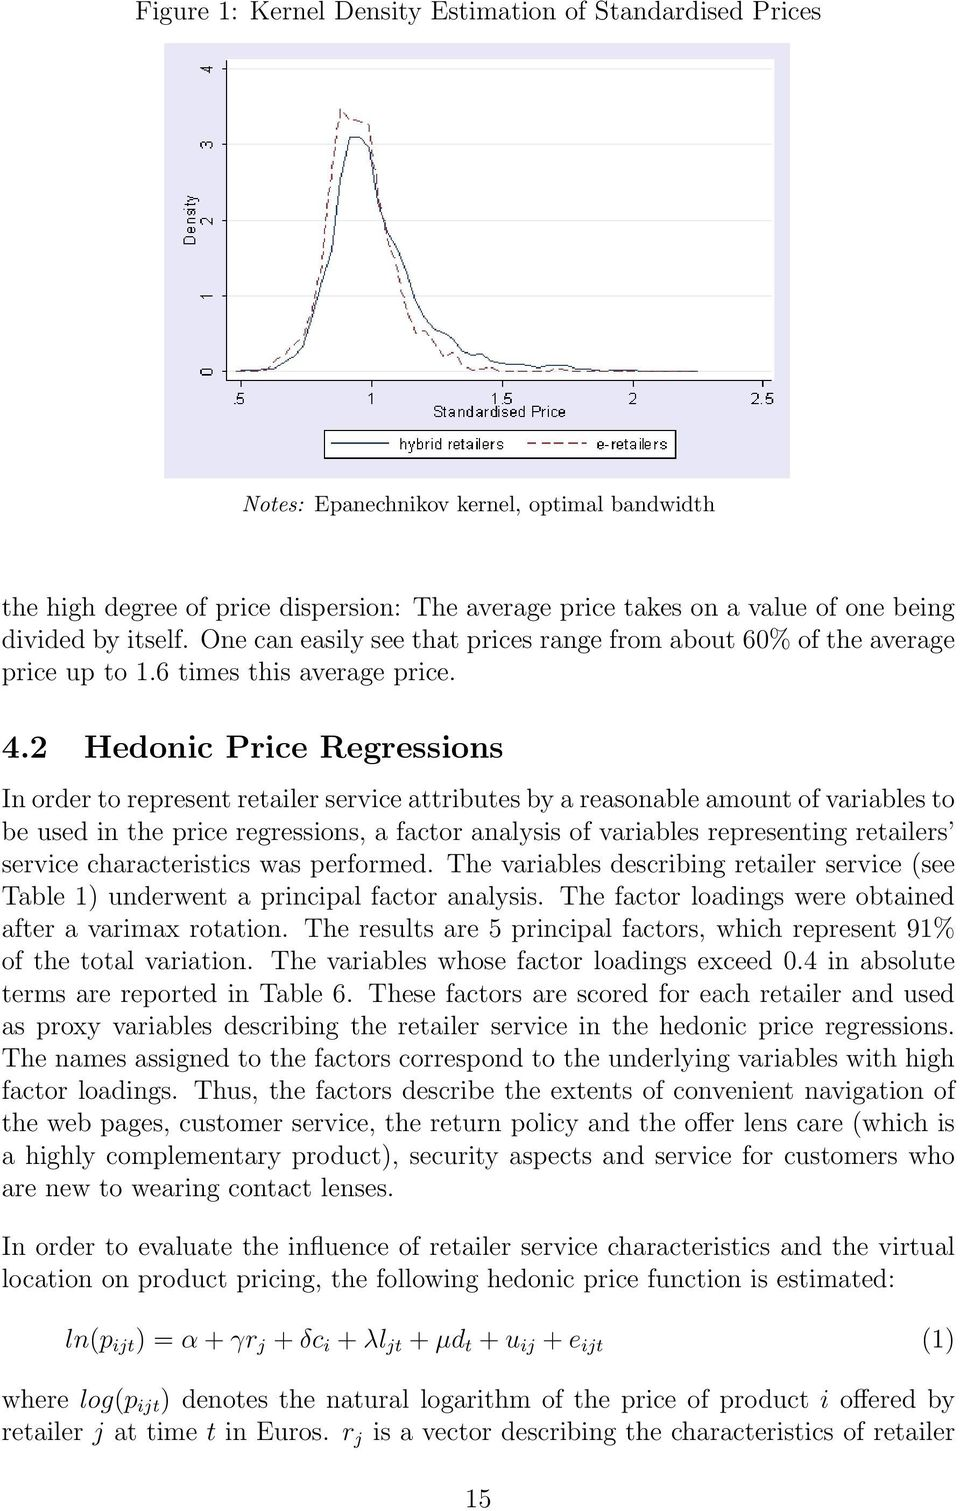 2 Hedonic Price Regressions In order to represent retailer service attributes by a reasonable amount of variables to be used in the price regressions, a factor analysis of variables representing